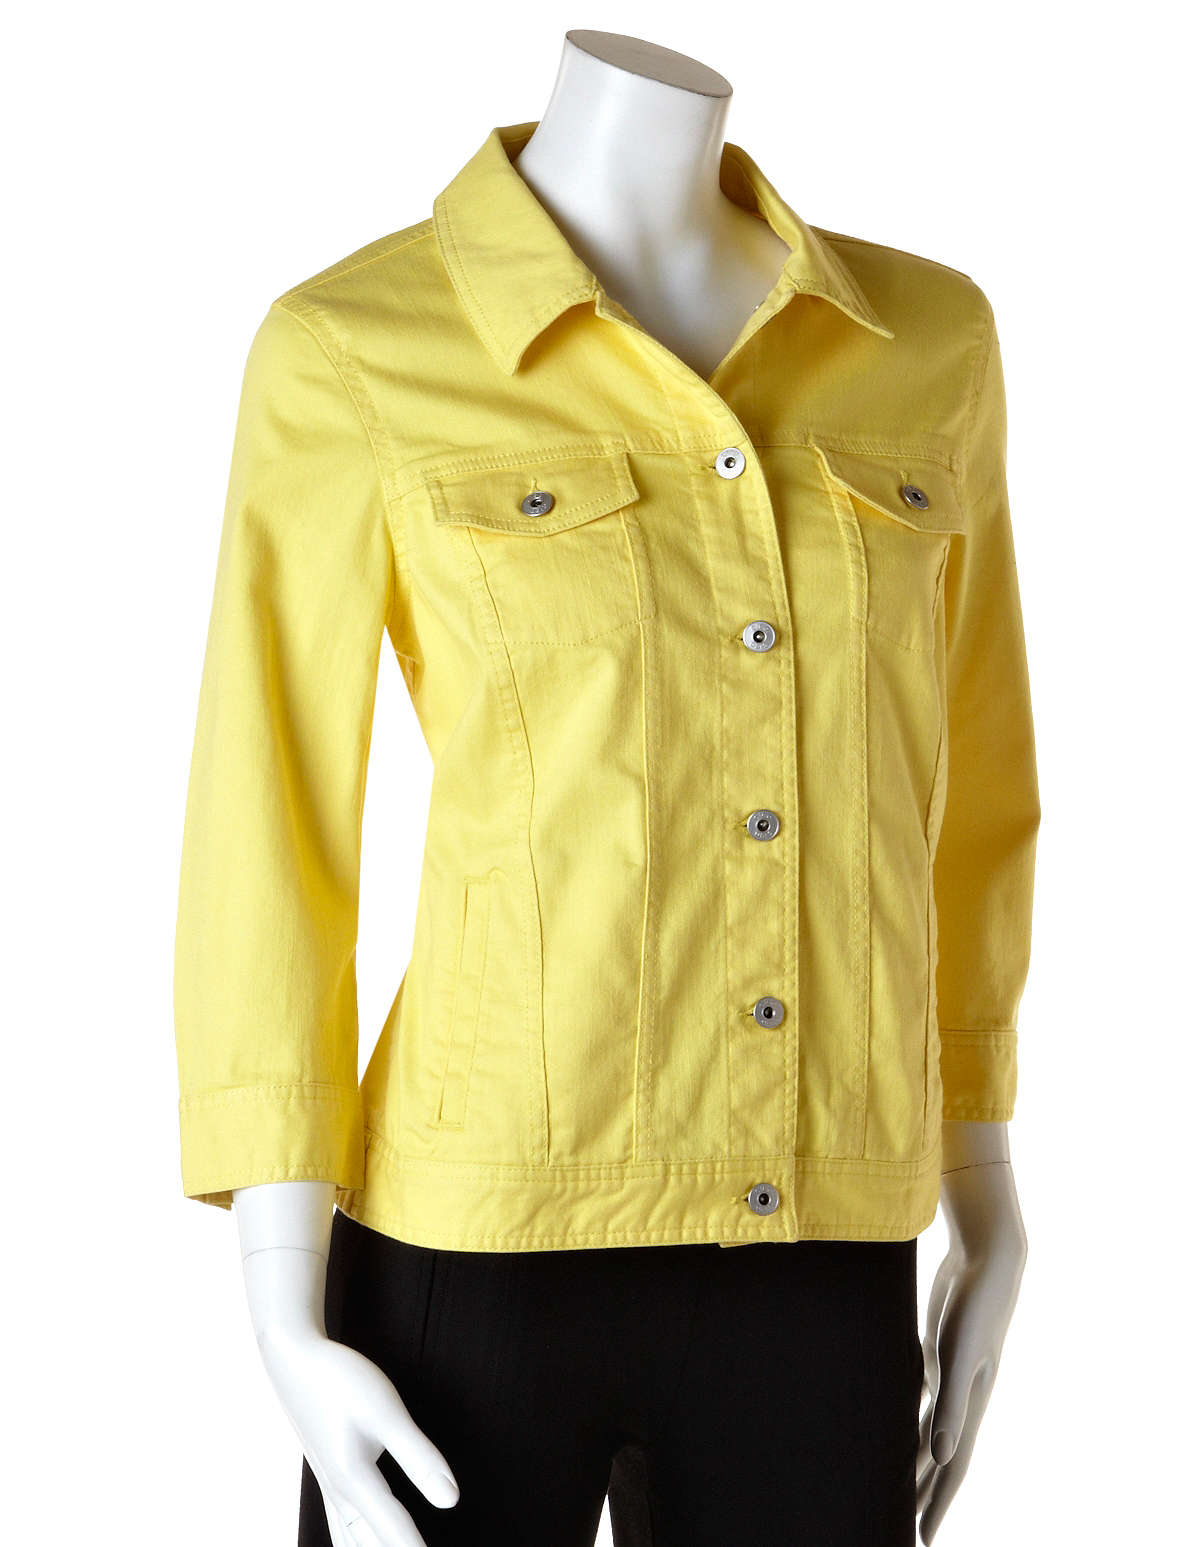 Signature 8 Free, fast shipping on Yellow Checkered Split Denim Jacket at Dolls Kill, an online boutique for punk and rock fashion. Shop graphic tees, bodysuits, & dresses.